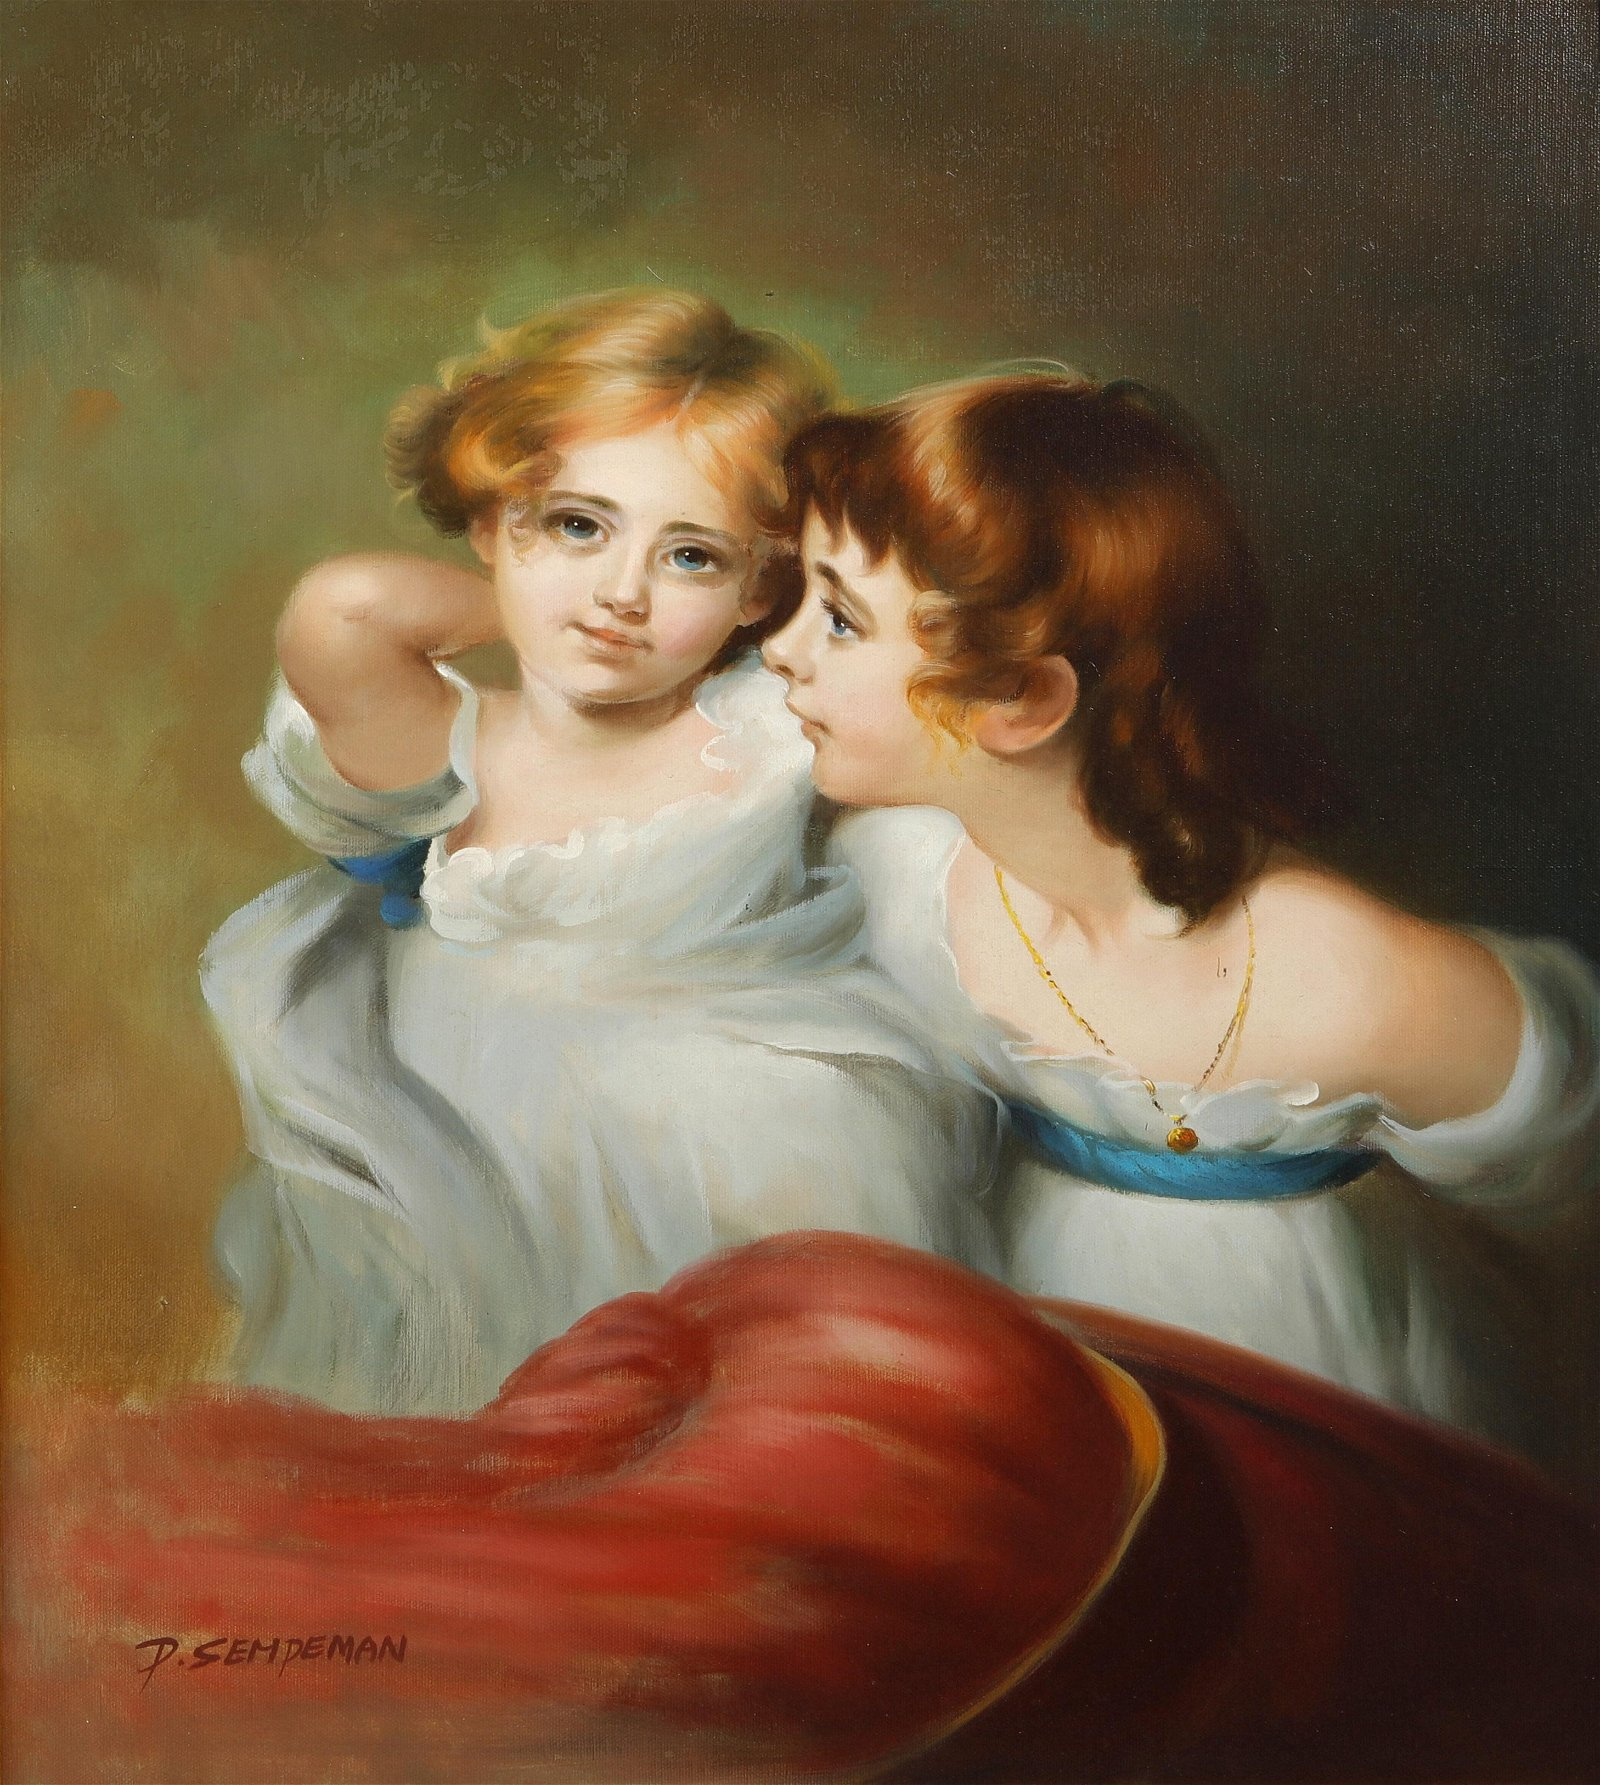 D. Semdeman, oil, Portrait of two young girls